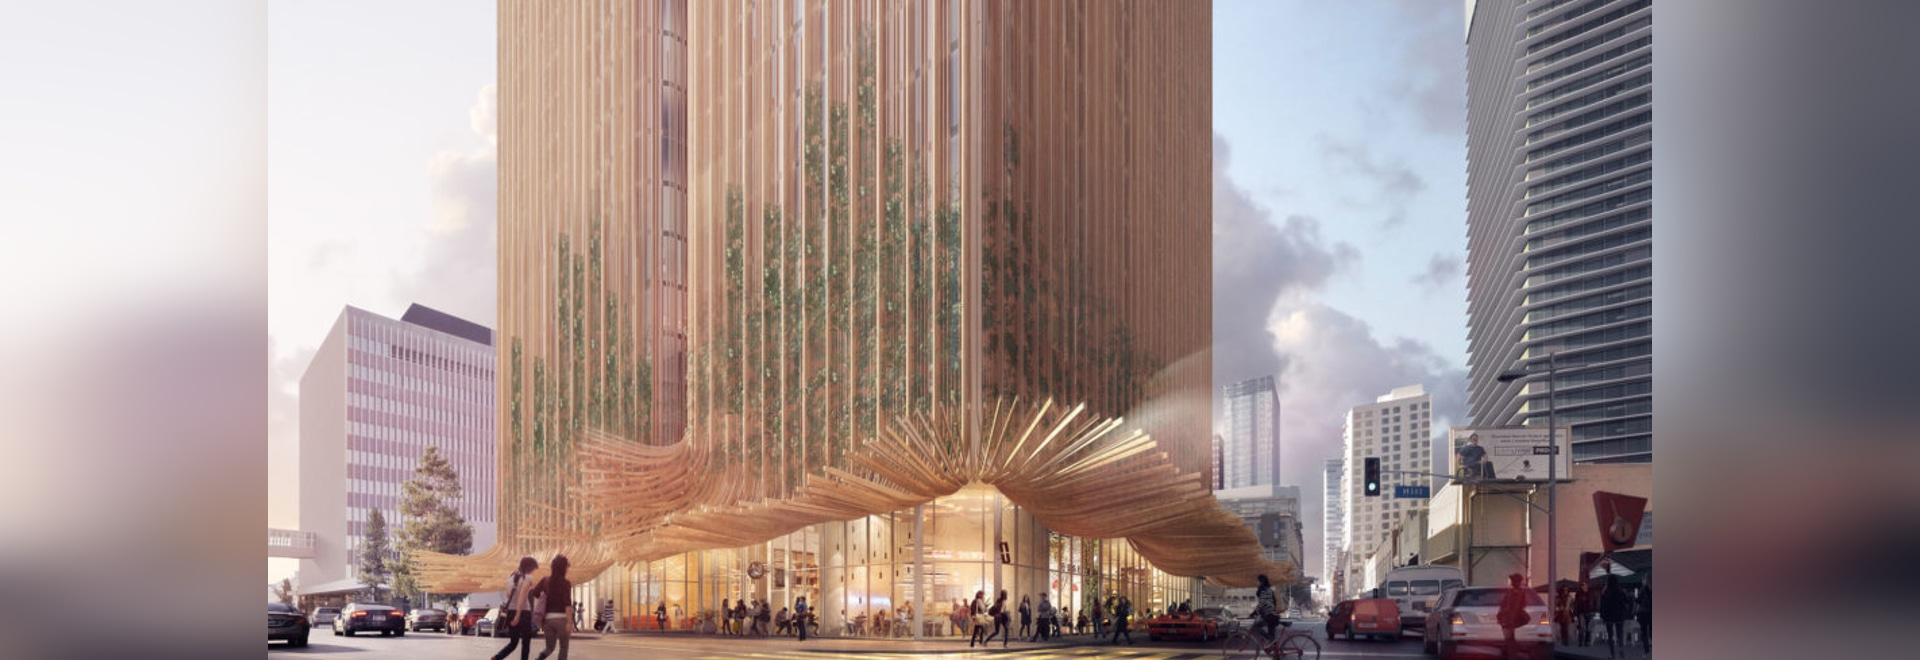 "The striped facade splays out on the ground floor in a nod to both the roots of a California redwood and Marilyn Monroe's ""flying skirt"" moment."